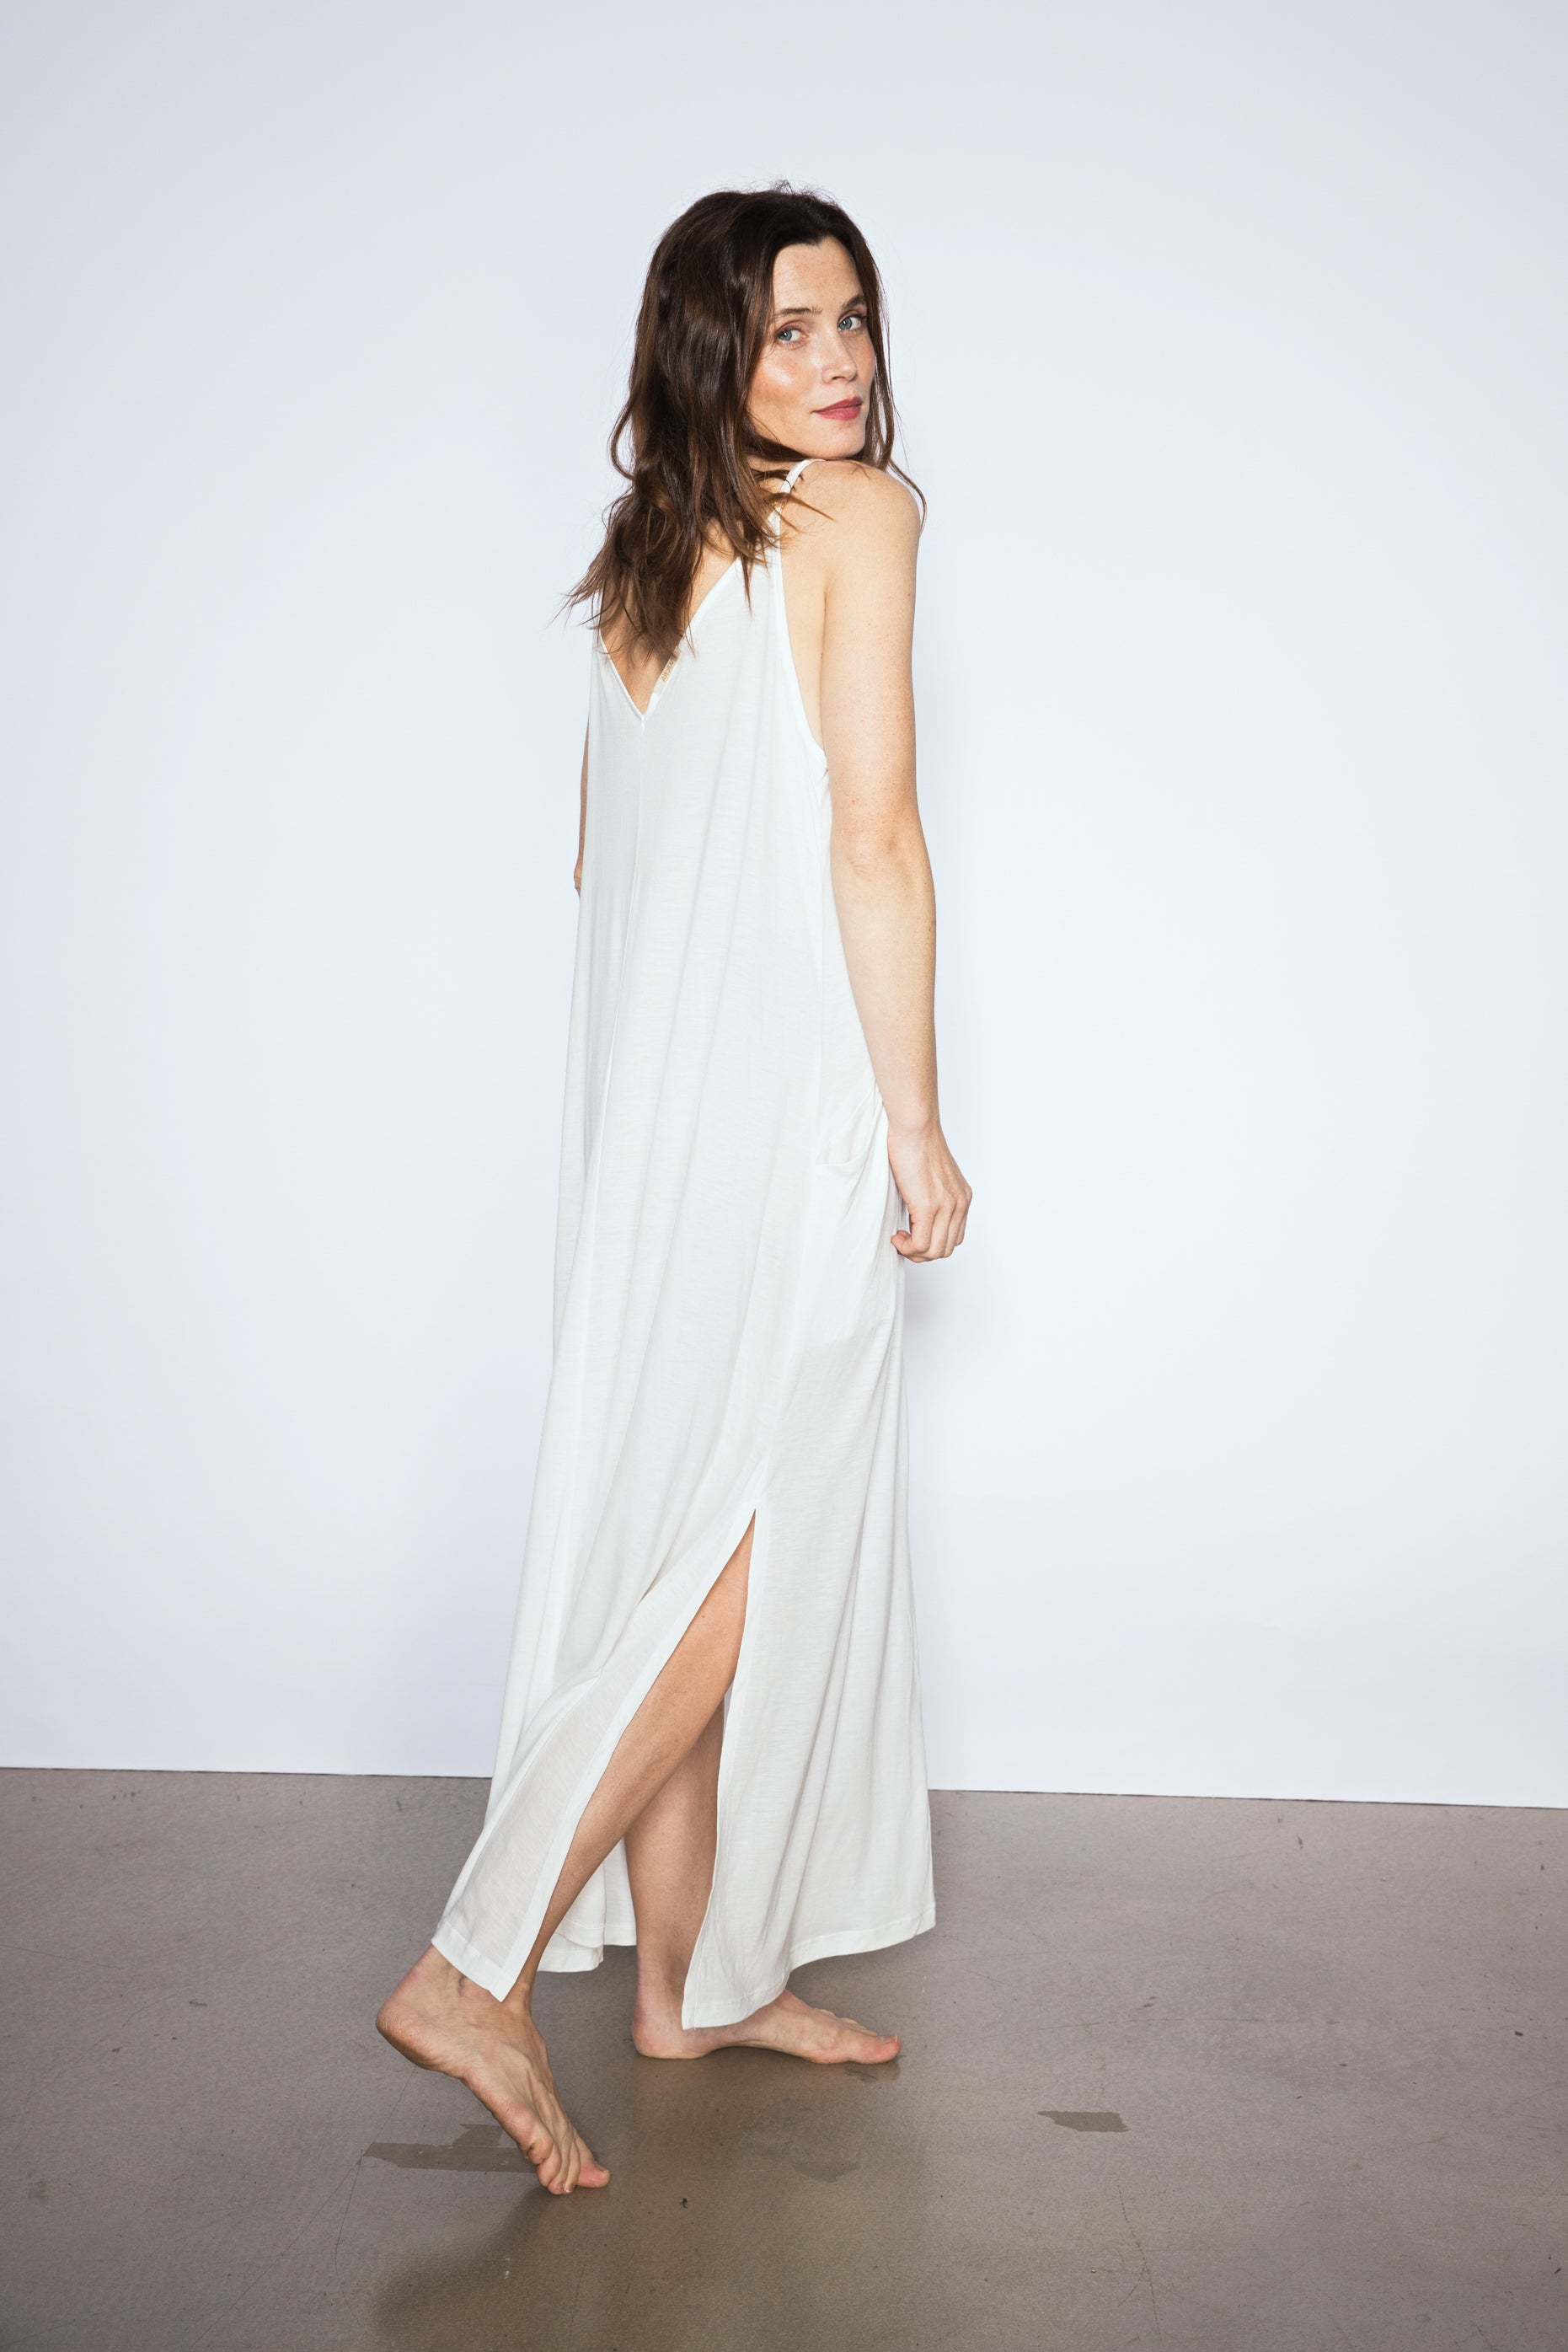 The Boho Slip Dress